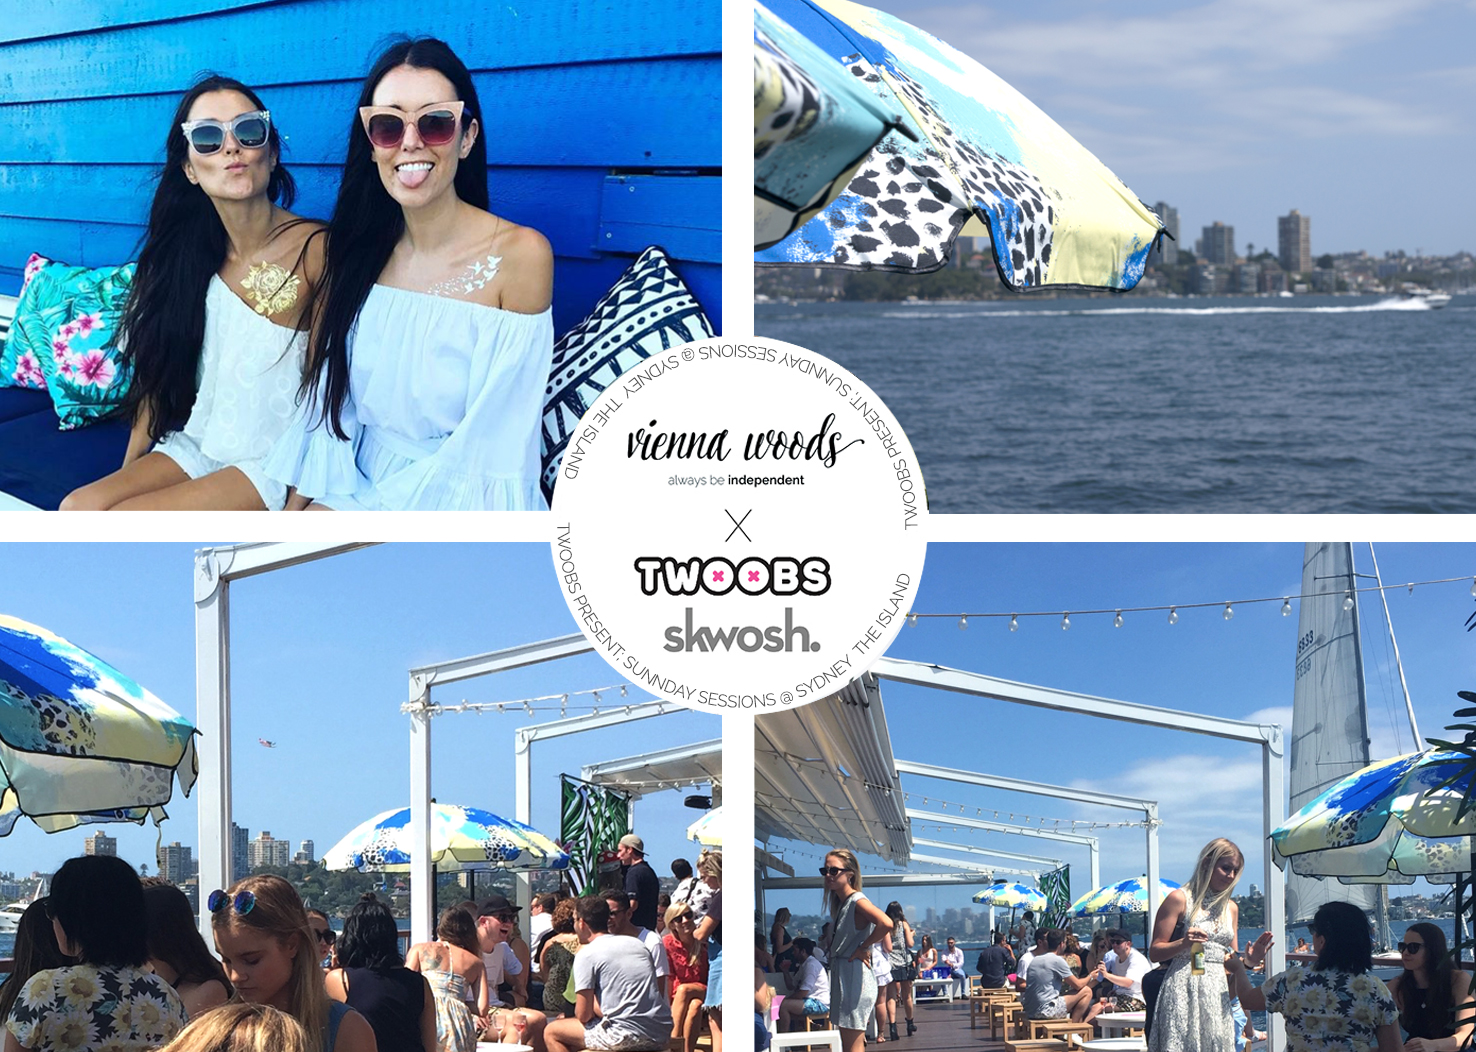 Blog_Lifestyle_Twoobs_TheIsland_Sydney_01